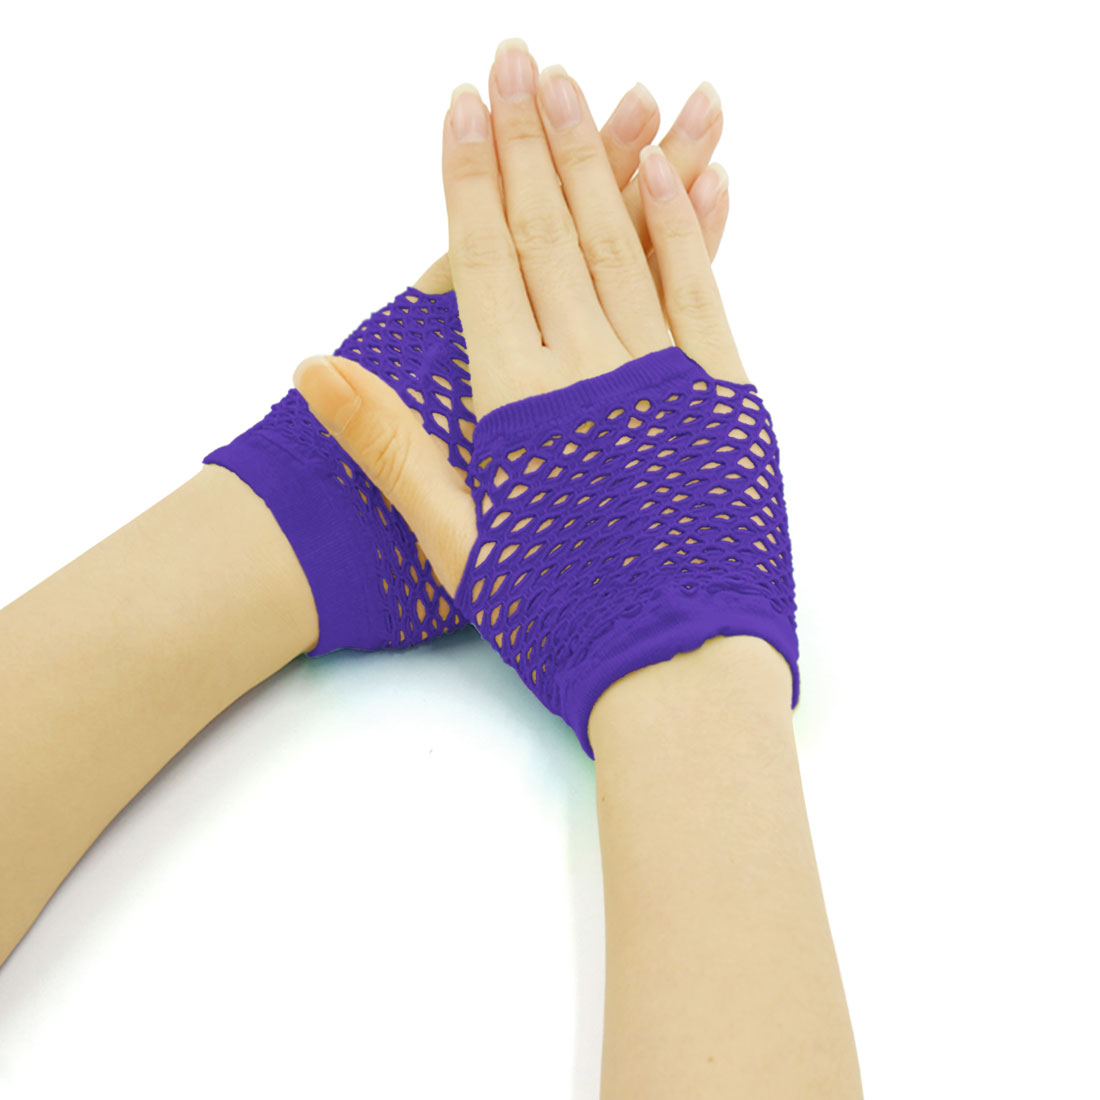 Women's Wrist Length Stretchy Fingerless Fishnet Gloves 2 Pairs Purple